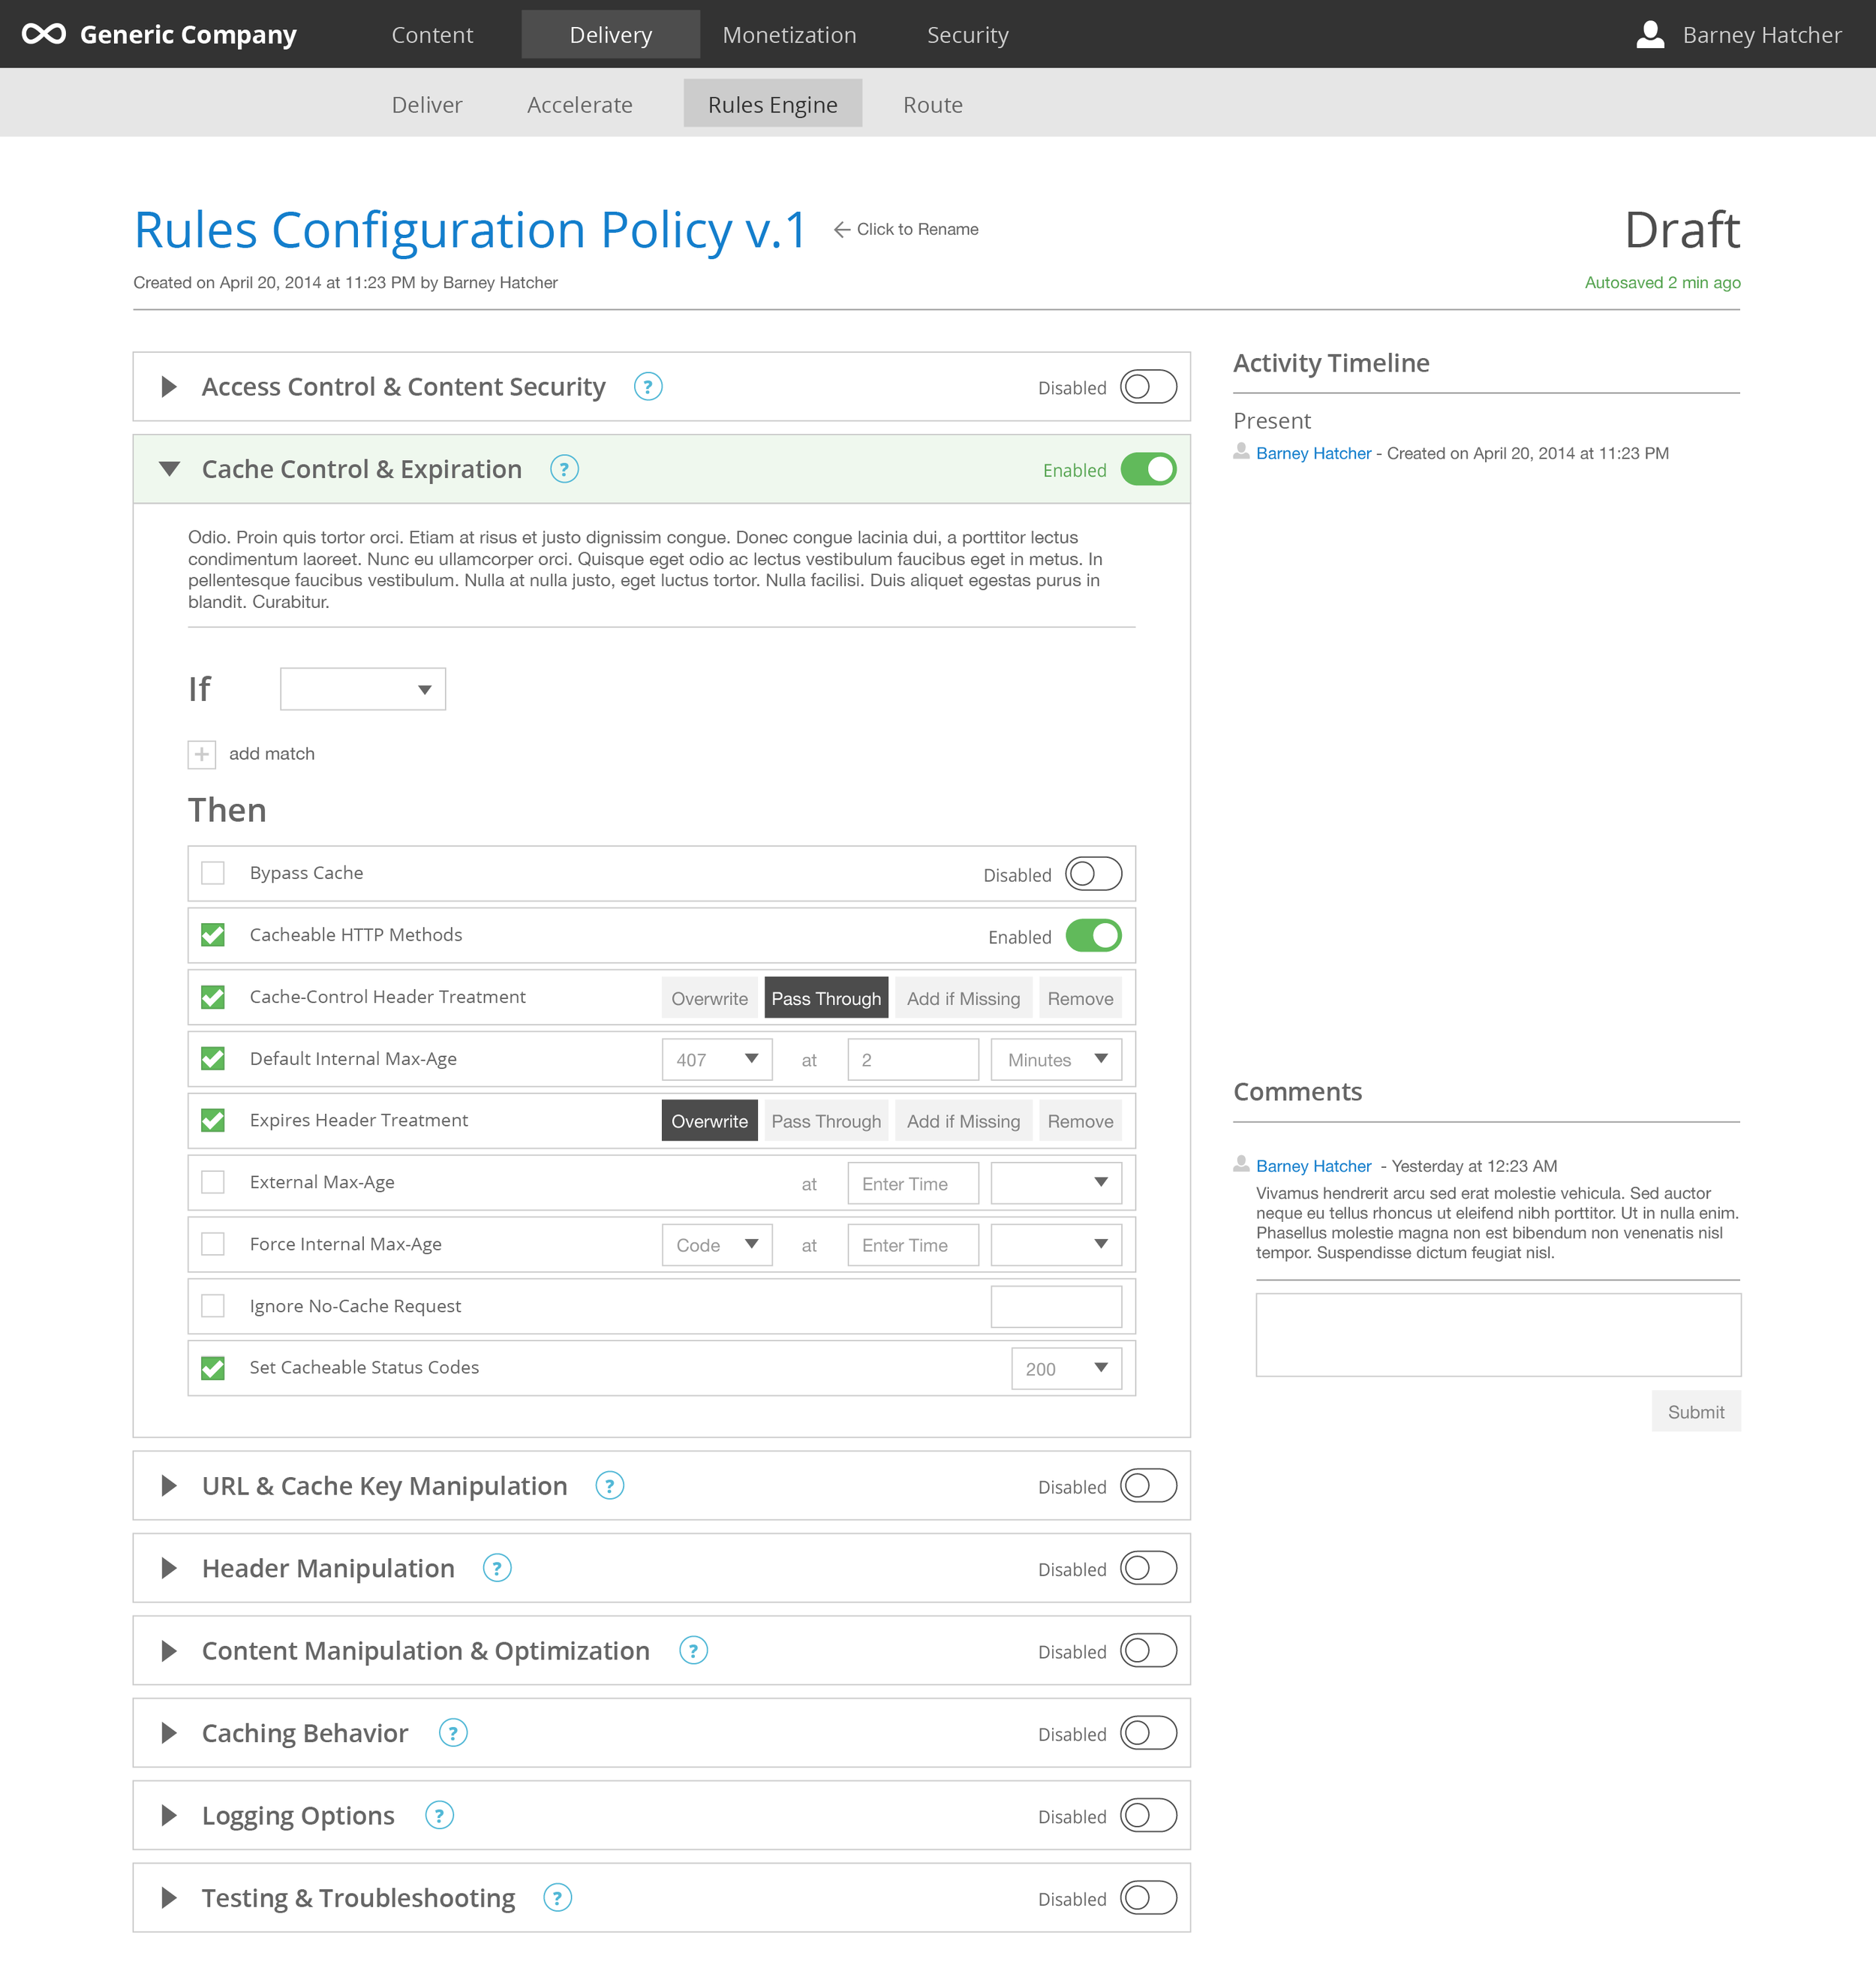 ux-rules-engine-v1_configuration policy-draft-1 enabled-features populated.png